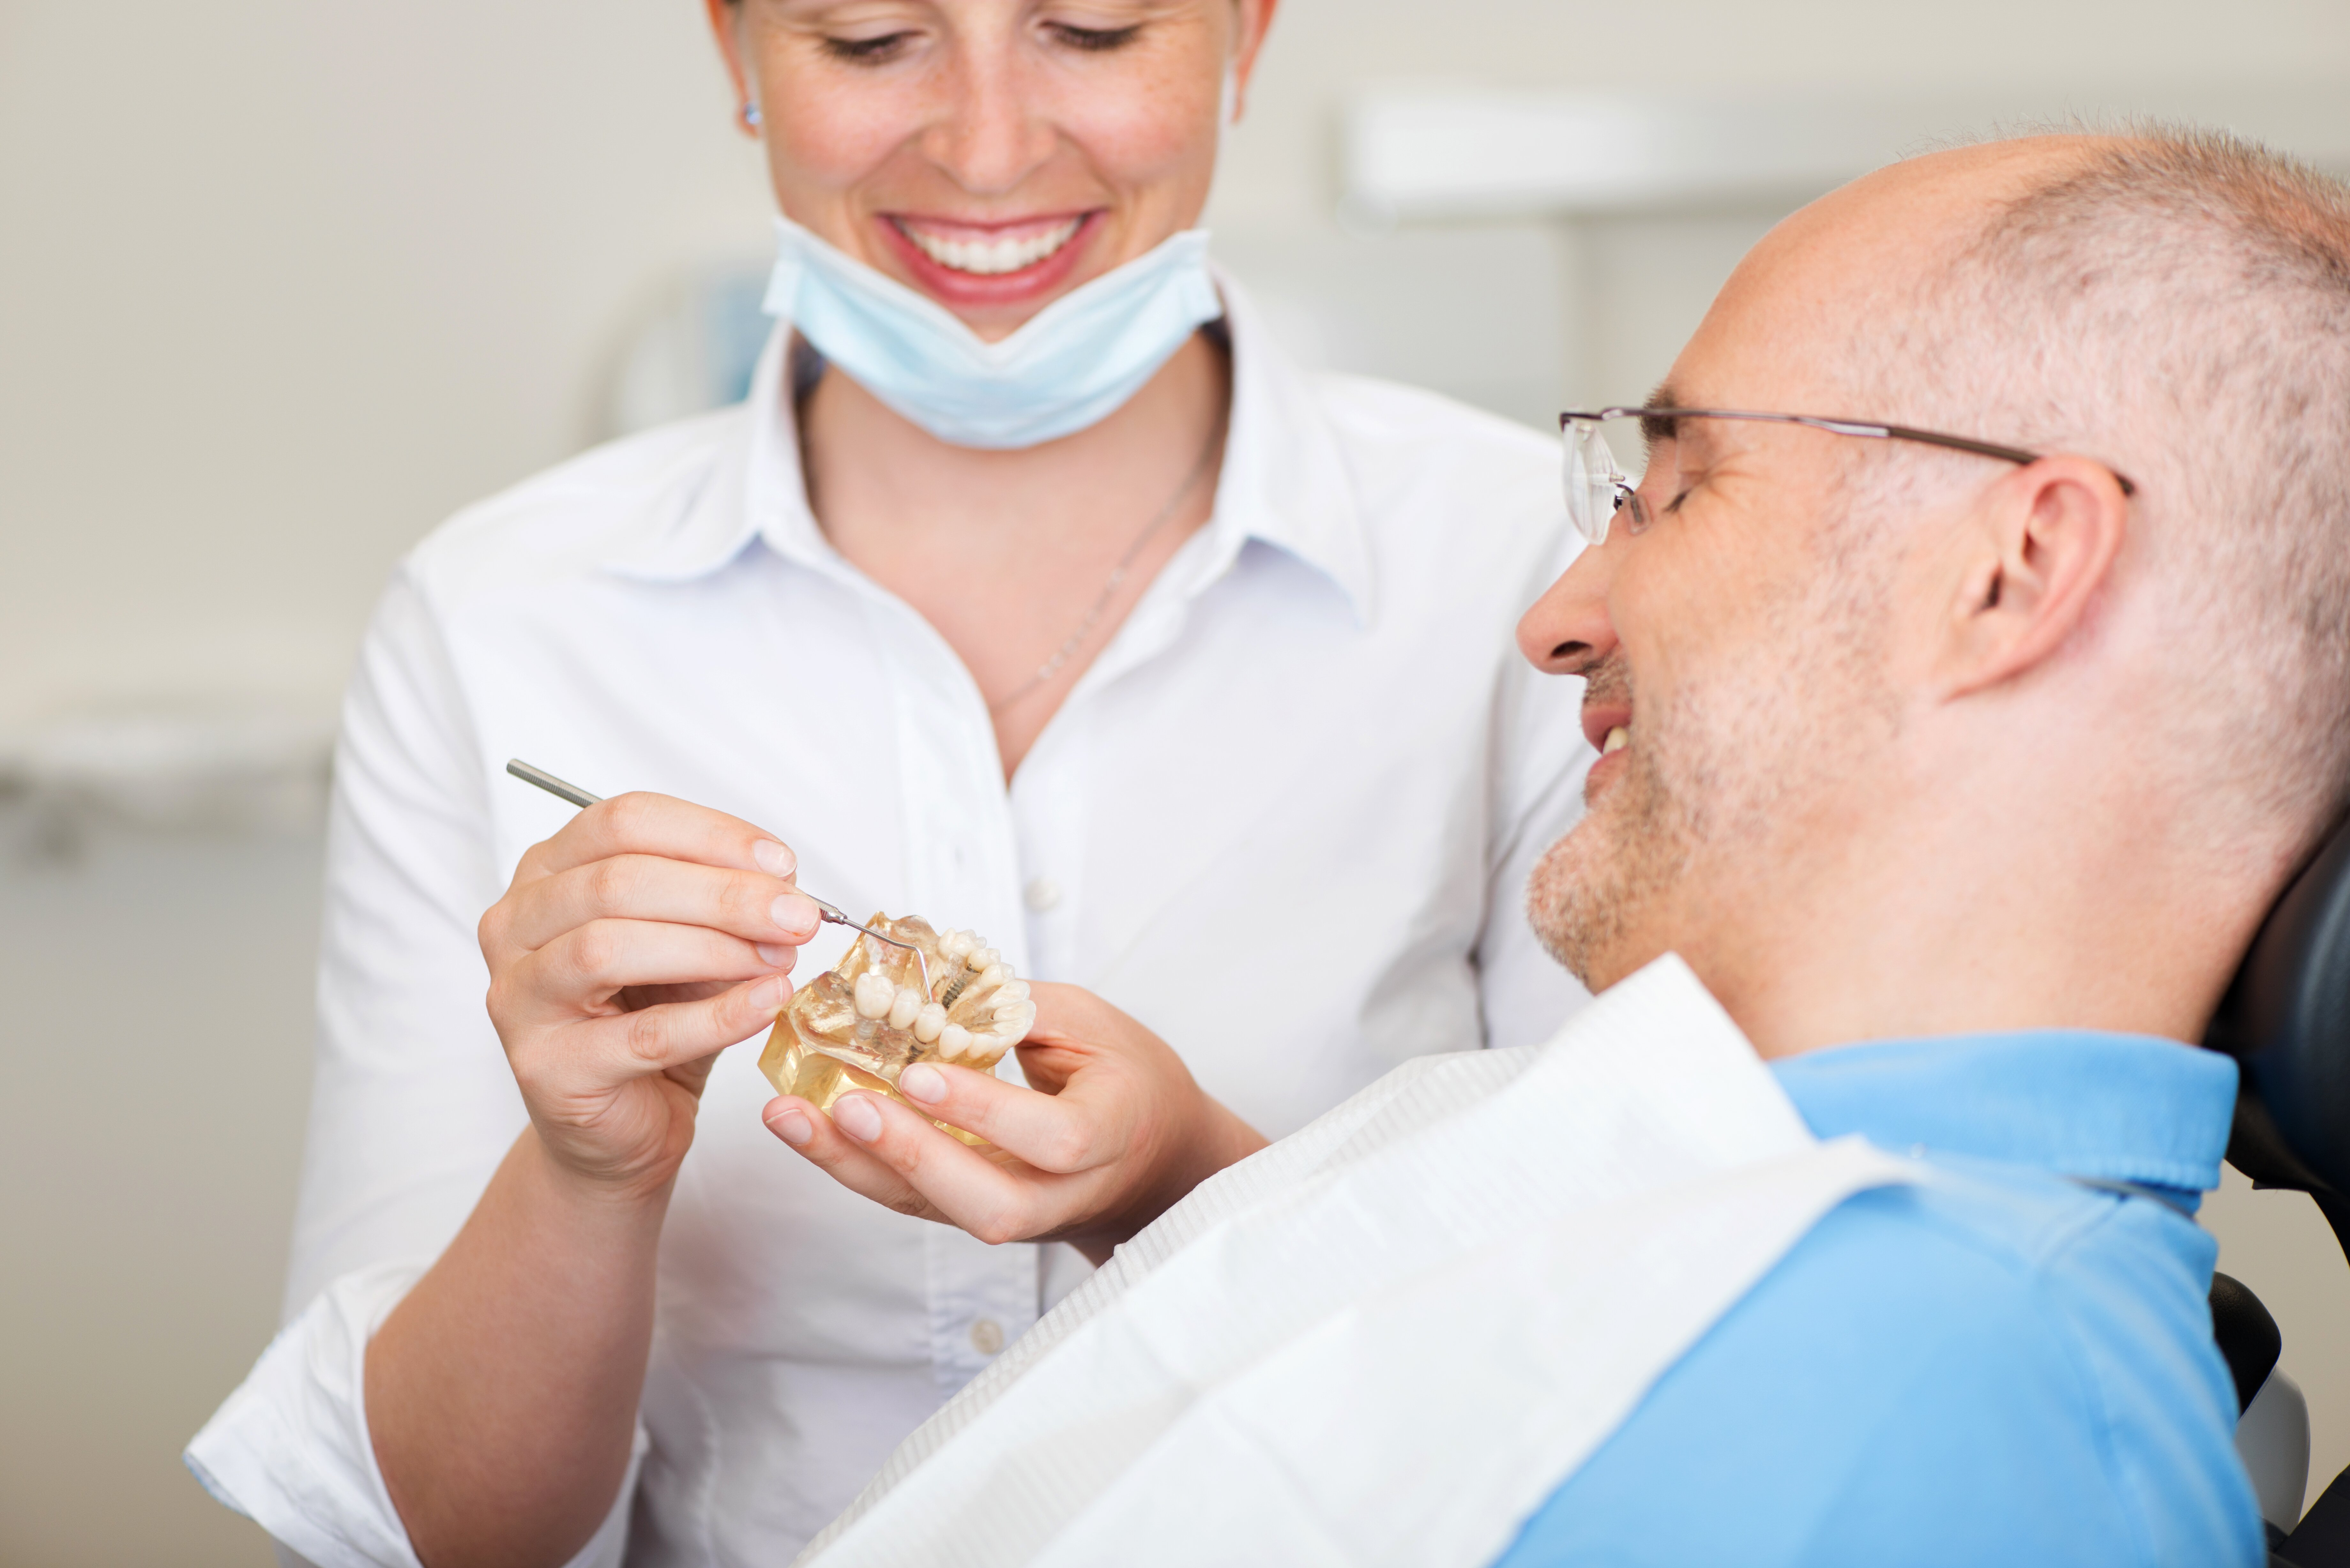 Dentist tinkering with a dental mould in front of a patient